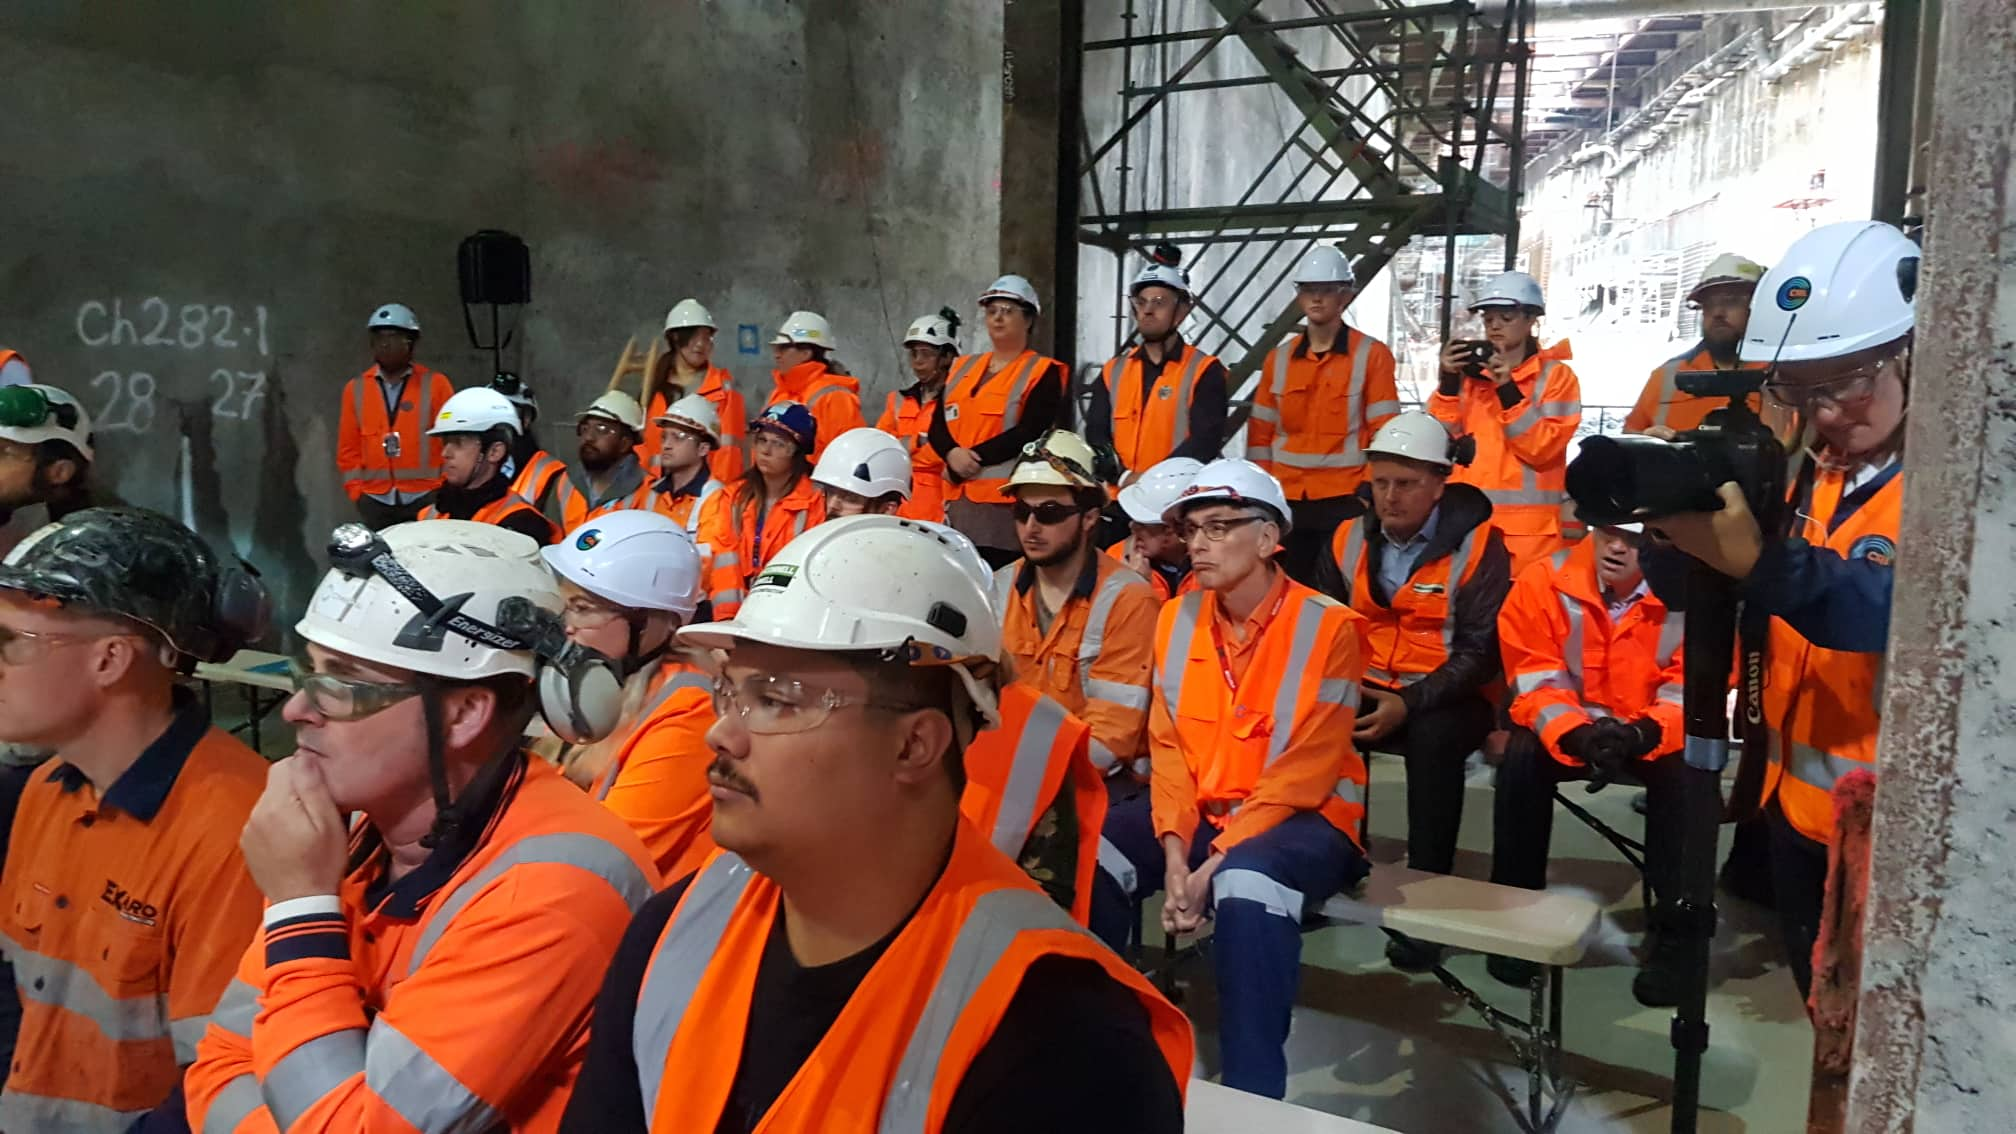 CEREMONY: A big day for those involved in the CRL project